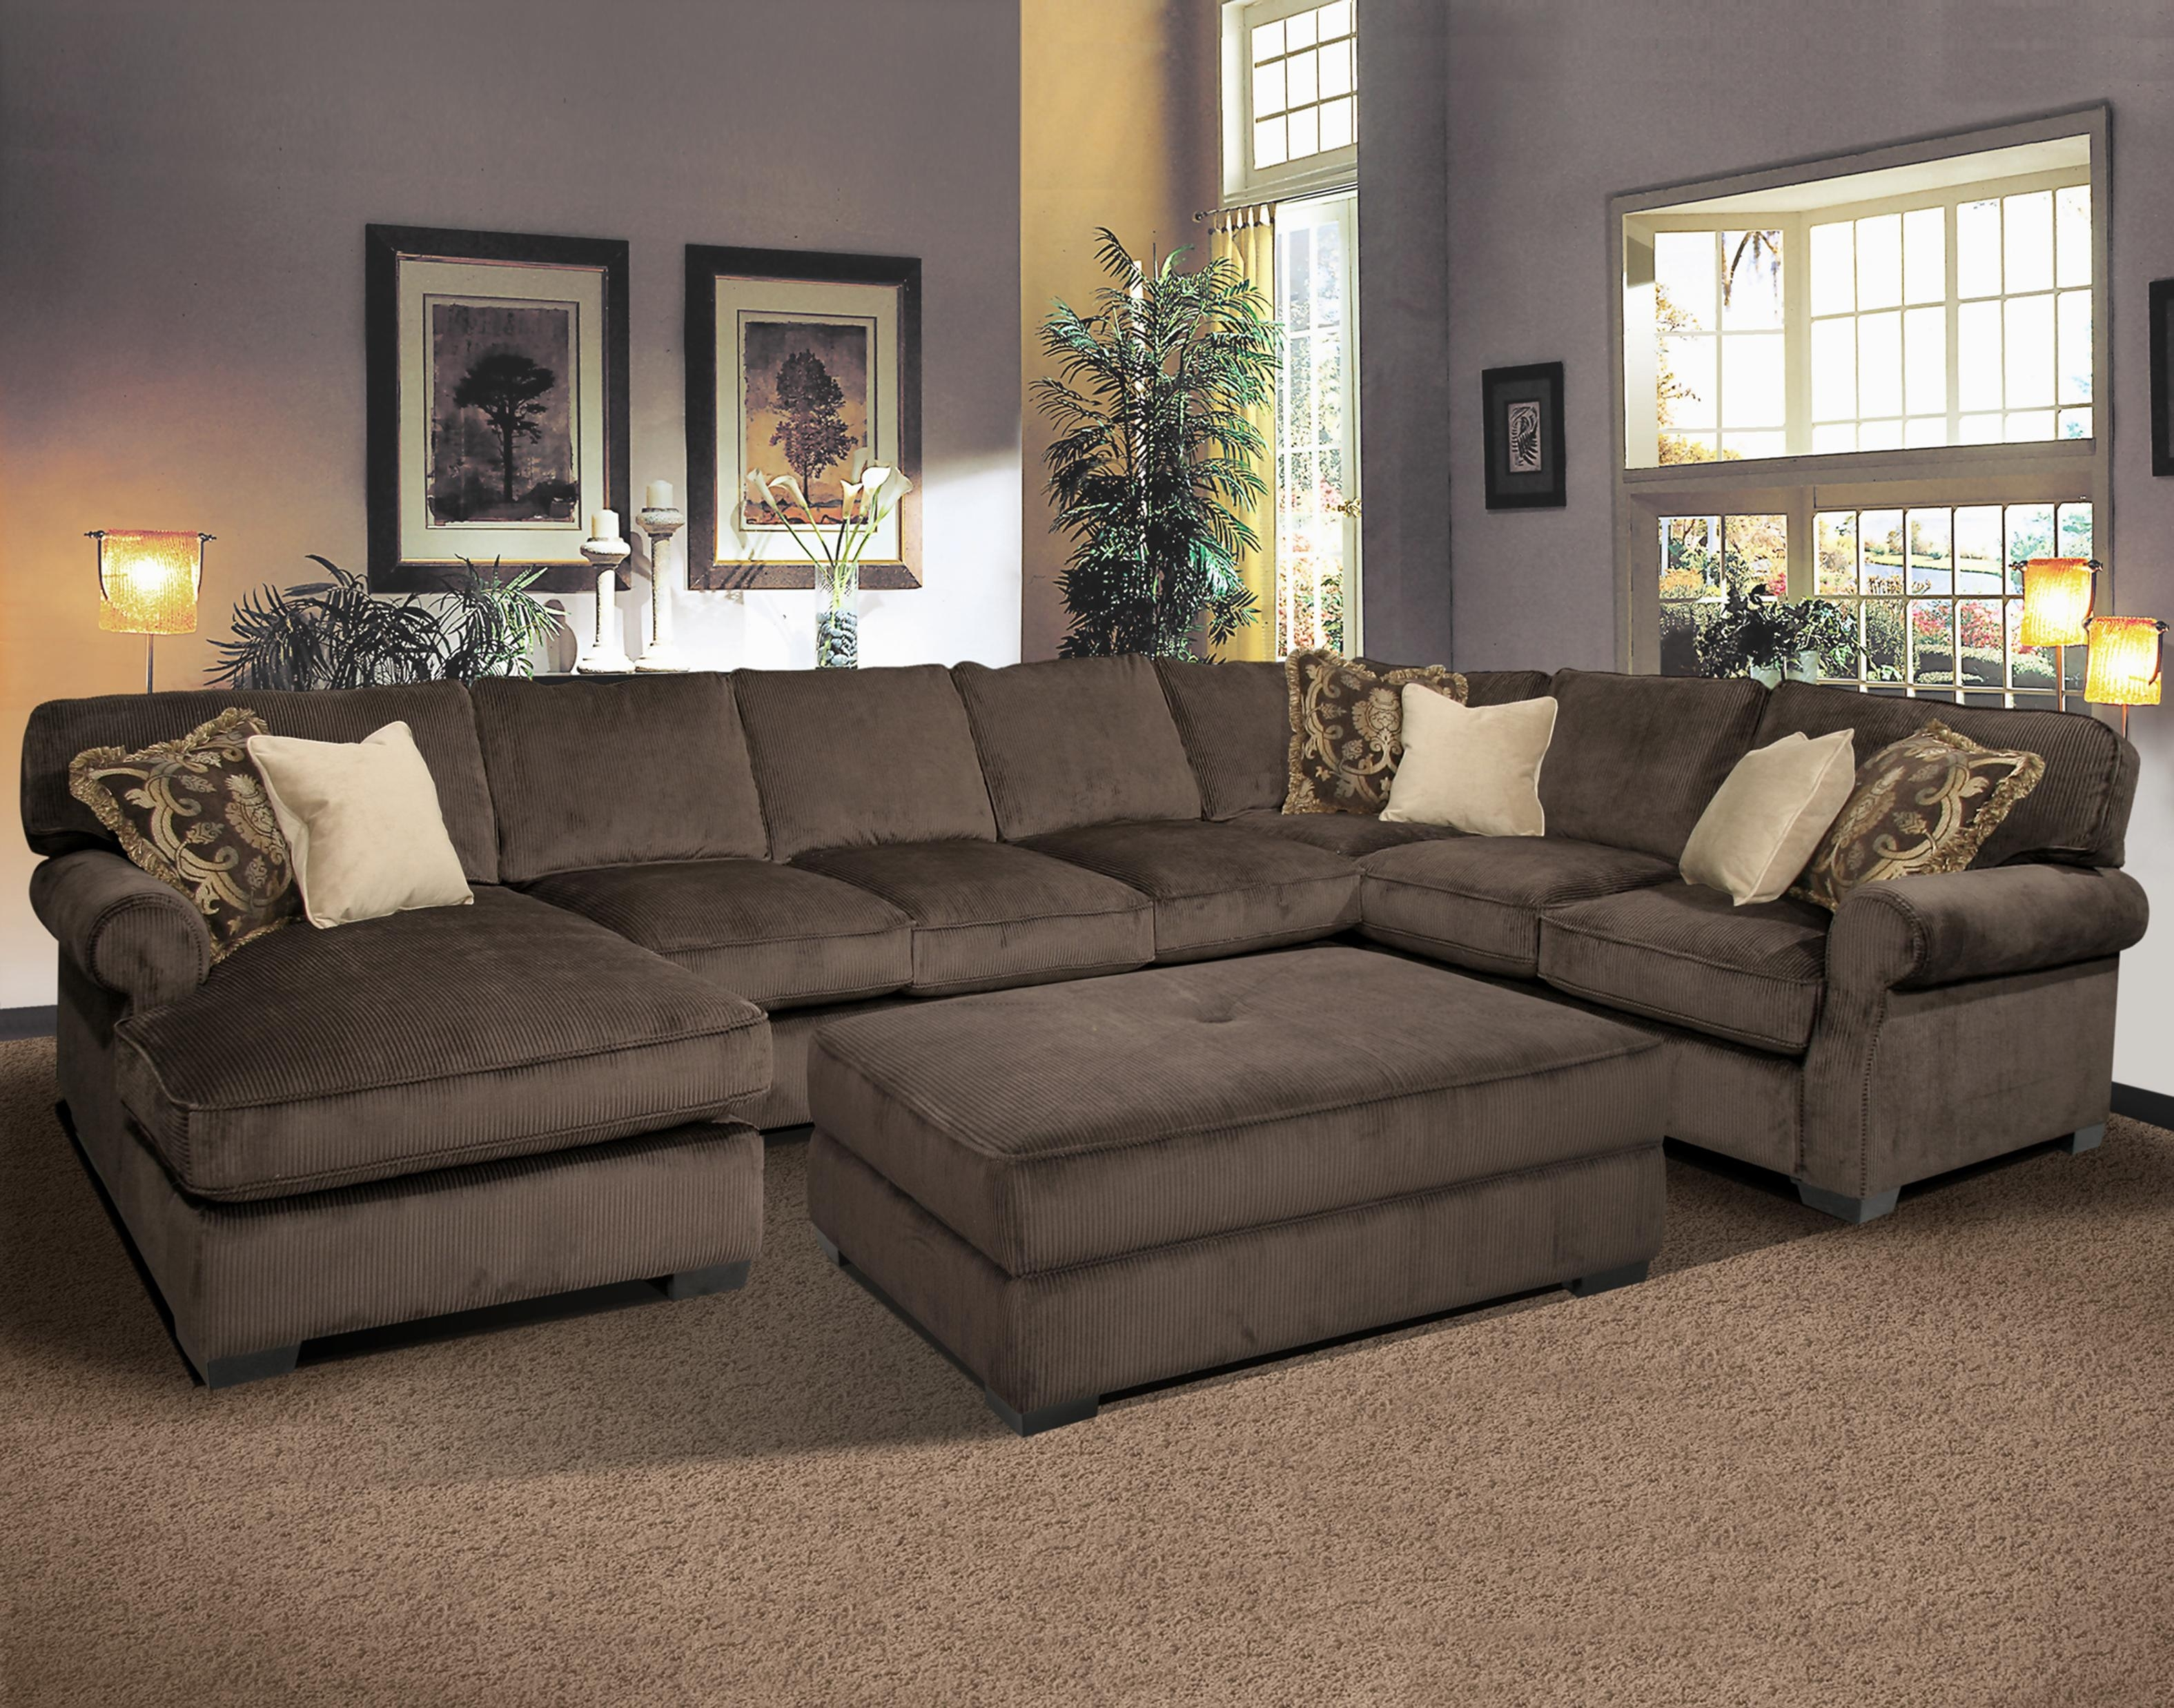 Couch. Astonishing Deep Couches For Sale: Couches-Are-In-For-Sale pertaining to Deep U Shaped Sectionals (Image 4 of 15)